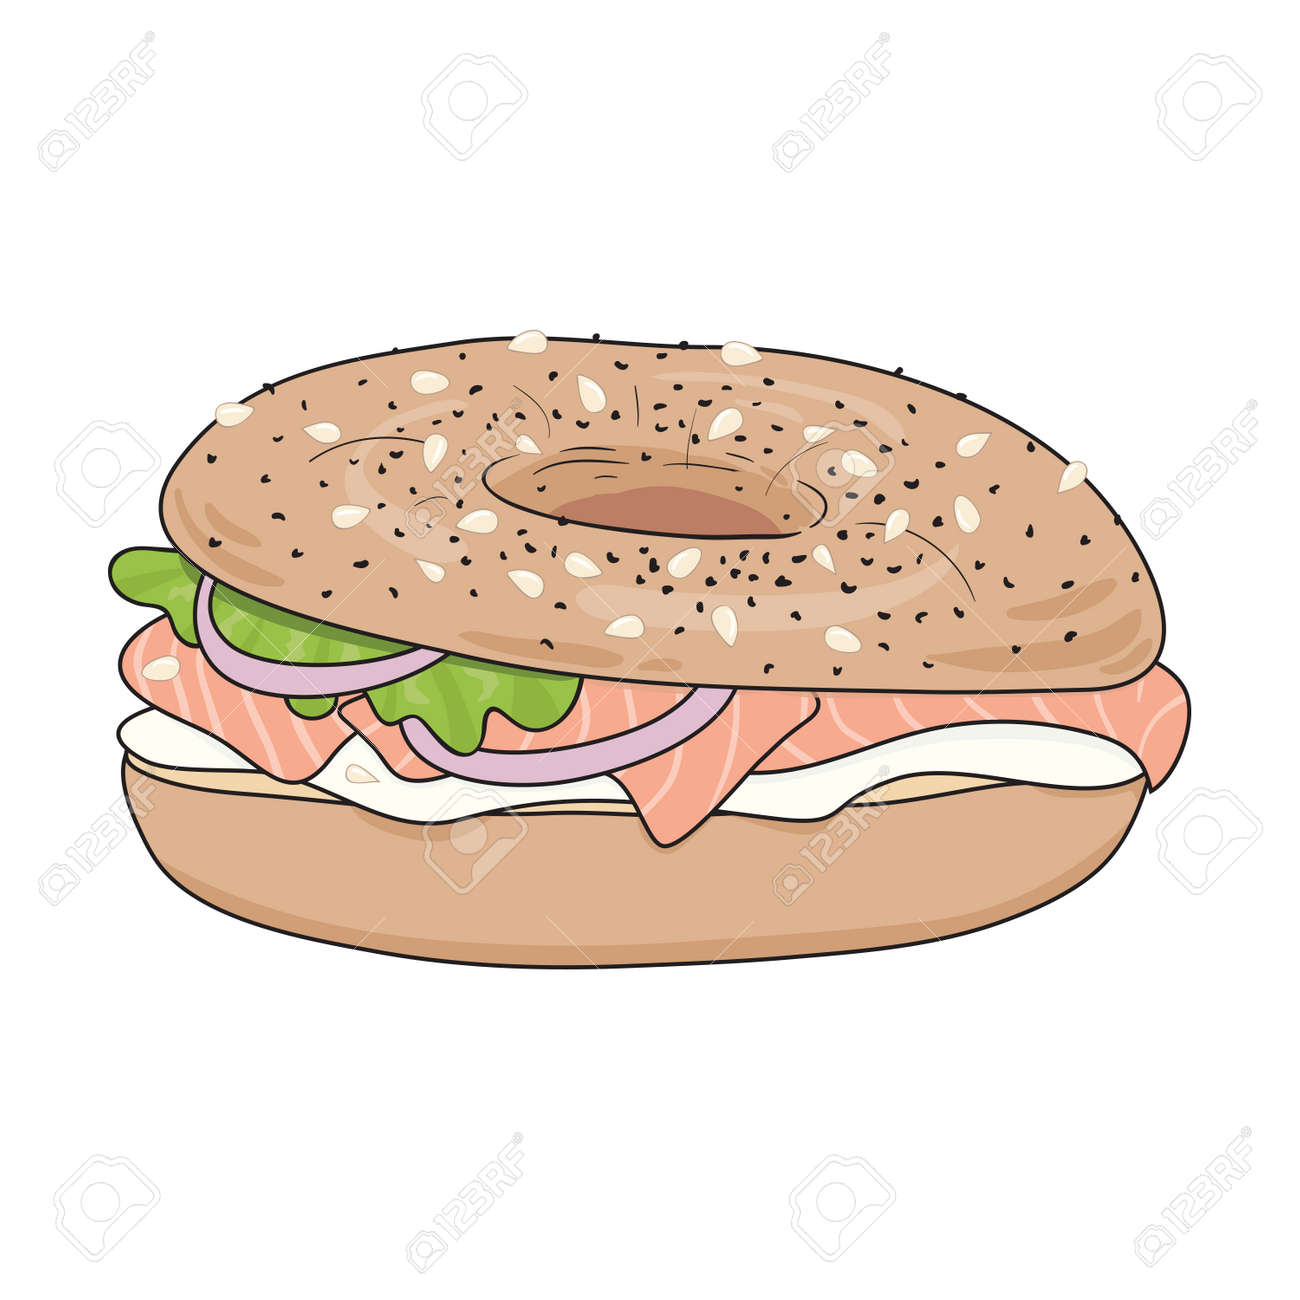 fresh bagel sandwich with cream cheese salmon fillet salad rh 123rf com Bagel Cartoon Clip Art Bagel Sandwich Recipe